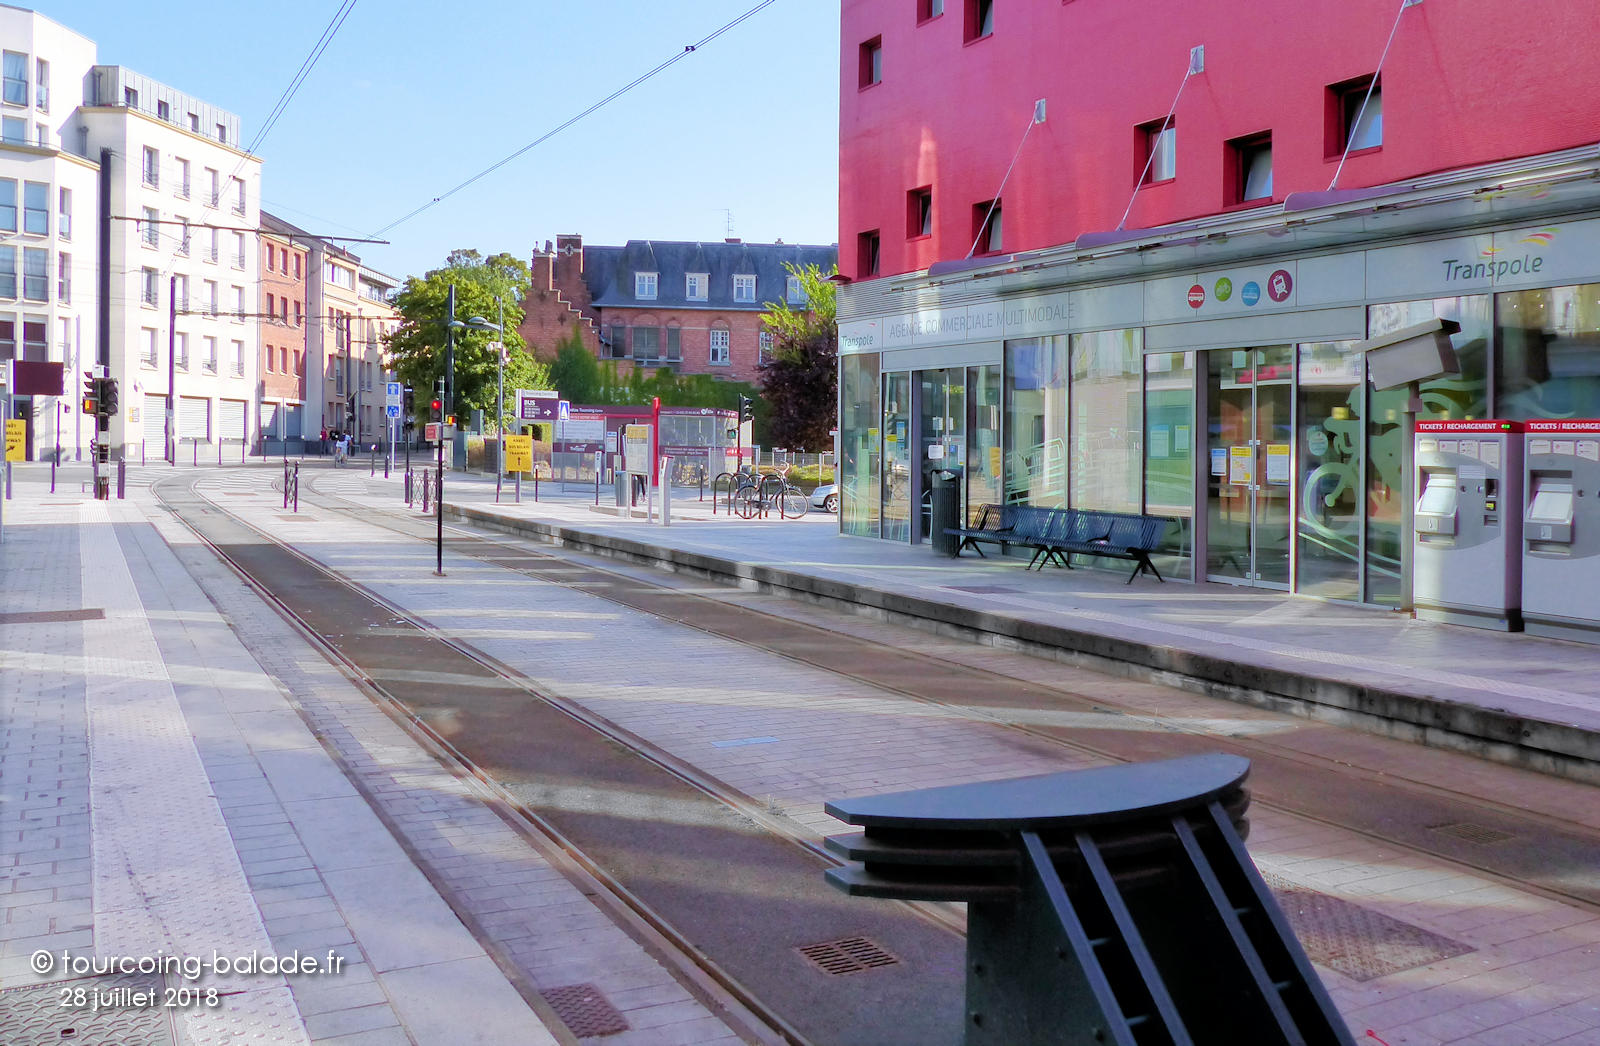 Tramway Tourcoing - Avocats Cuvelier, Tran